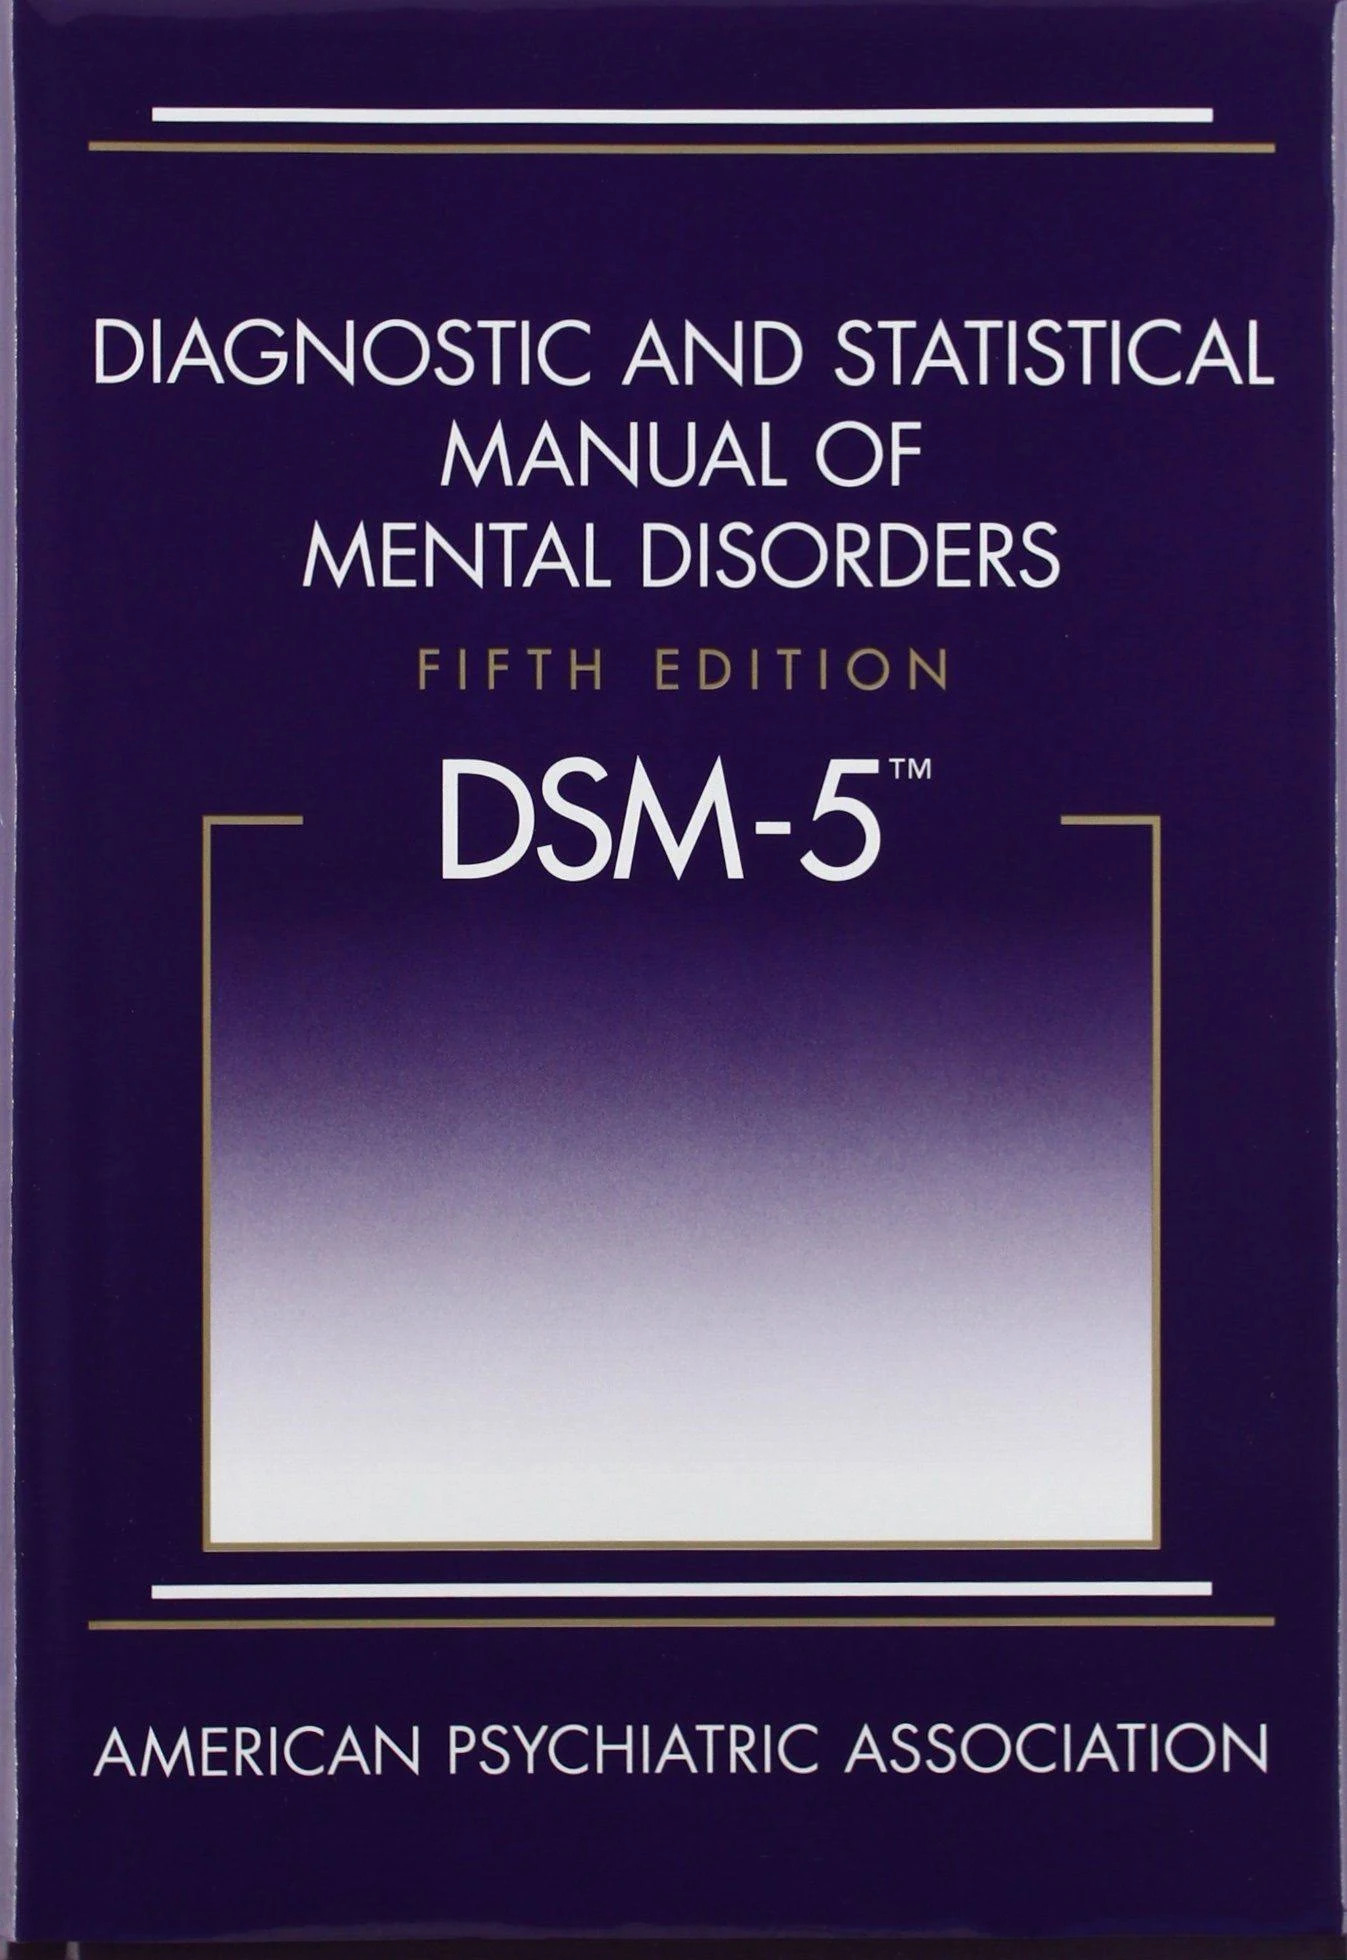 Diagnostic and Statistical Manual of Mental Disorders, 5th Edition